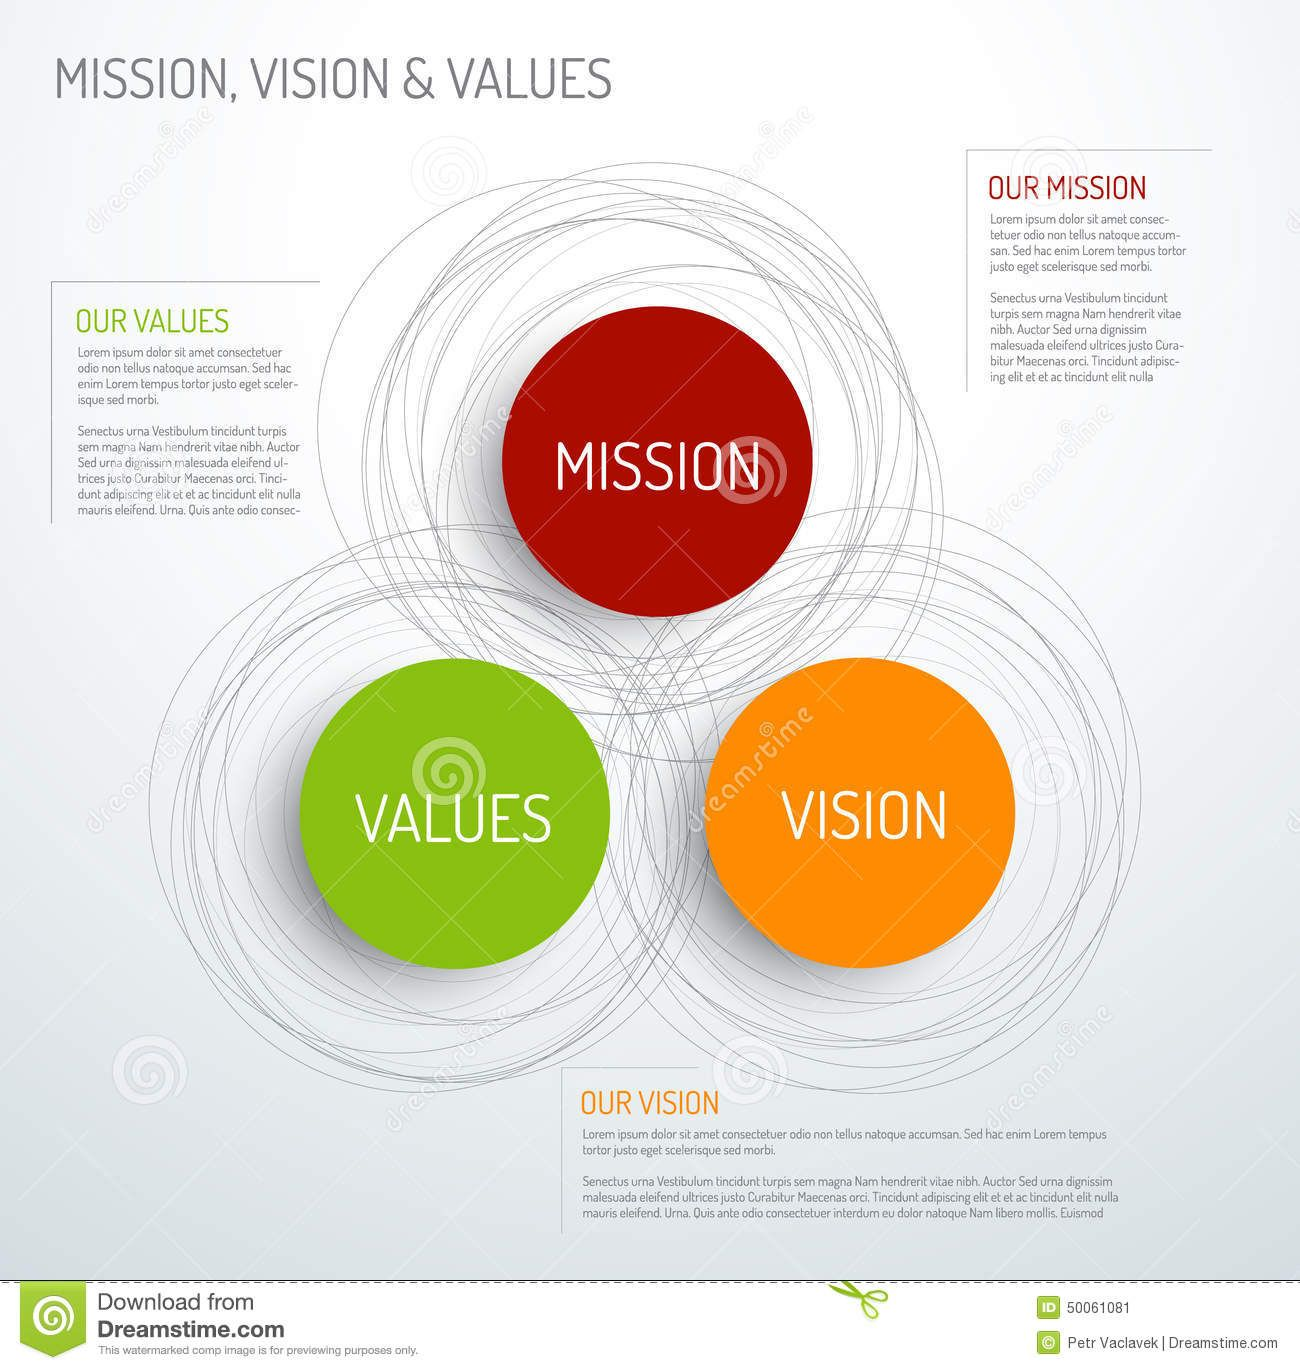 Mission, vision and values diagram Mission vision